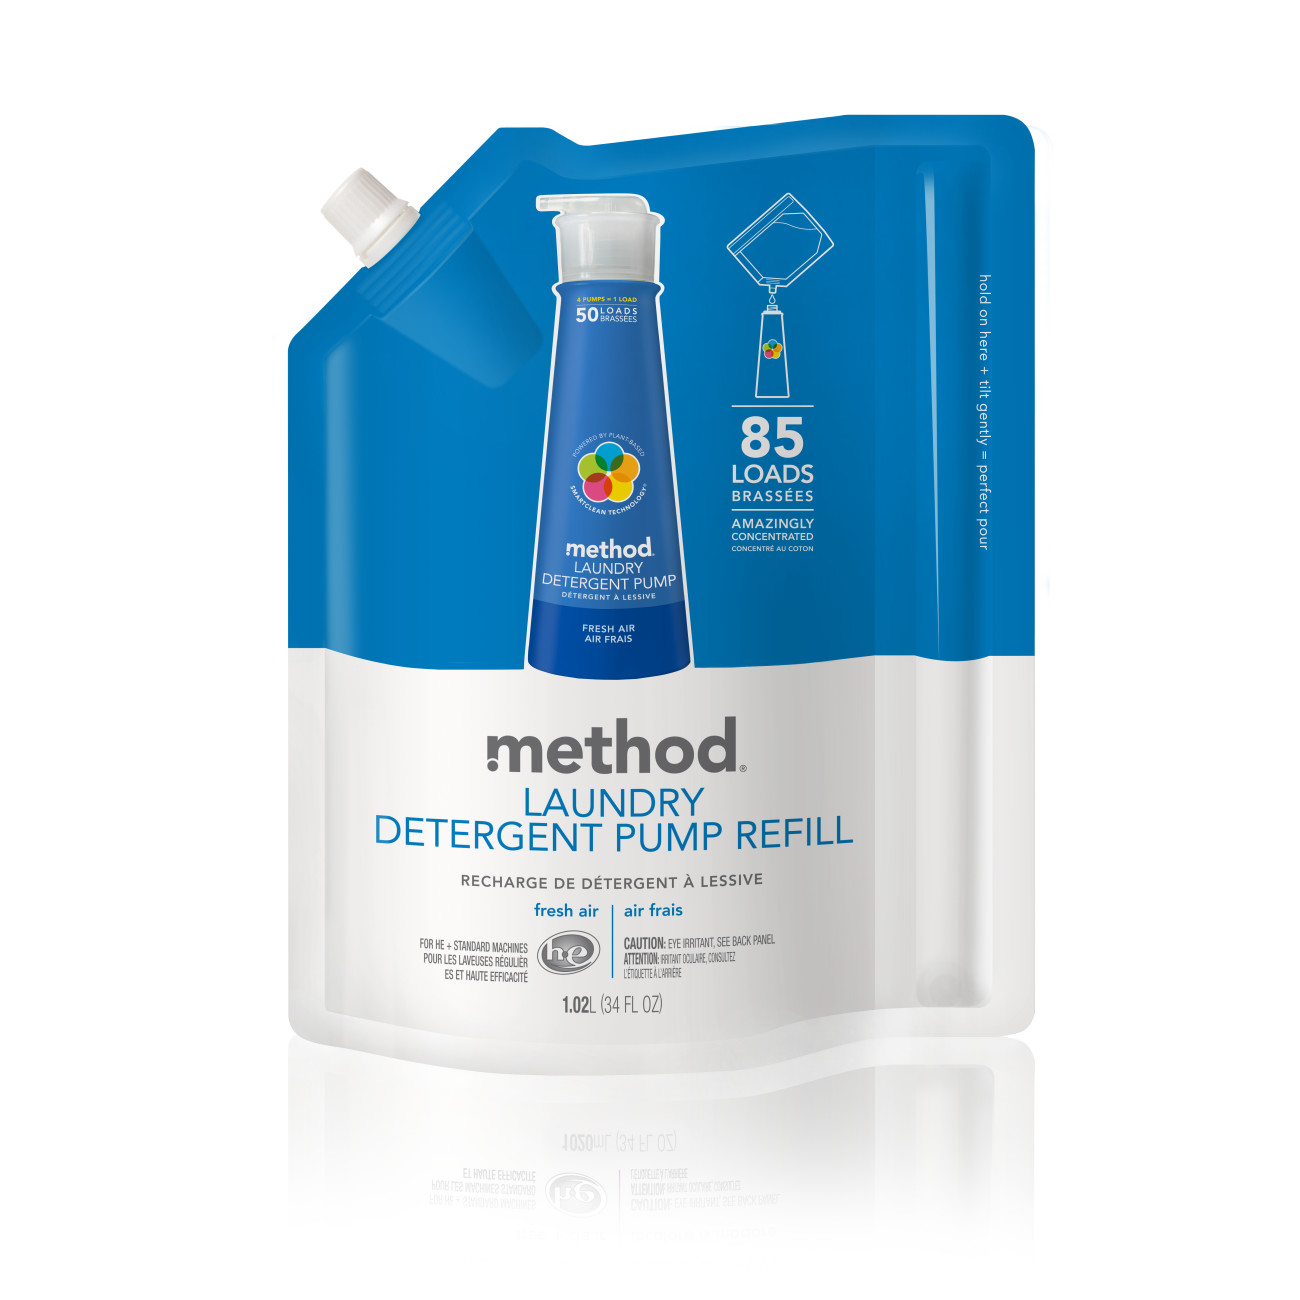 Method Laundry Detergent Refill Bag with 85 loads worth of soap.